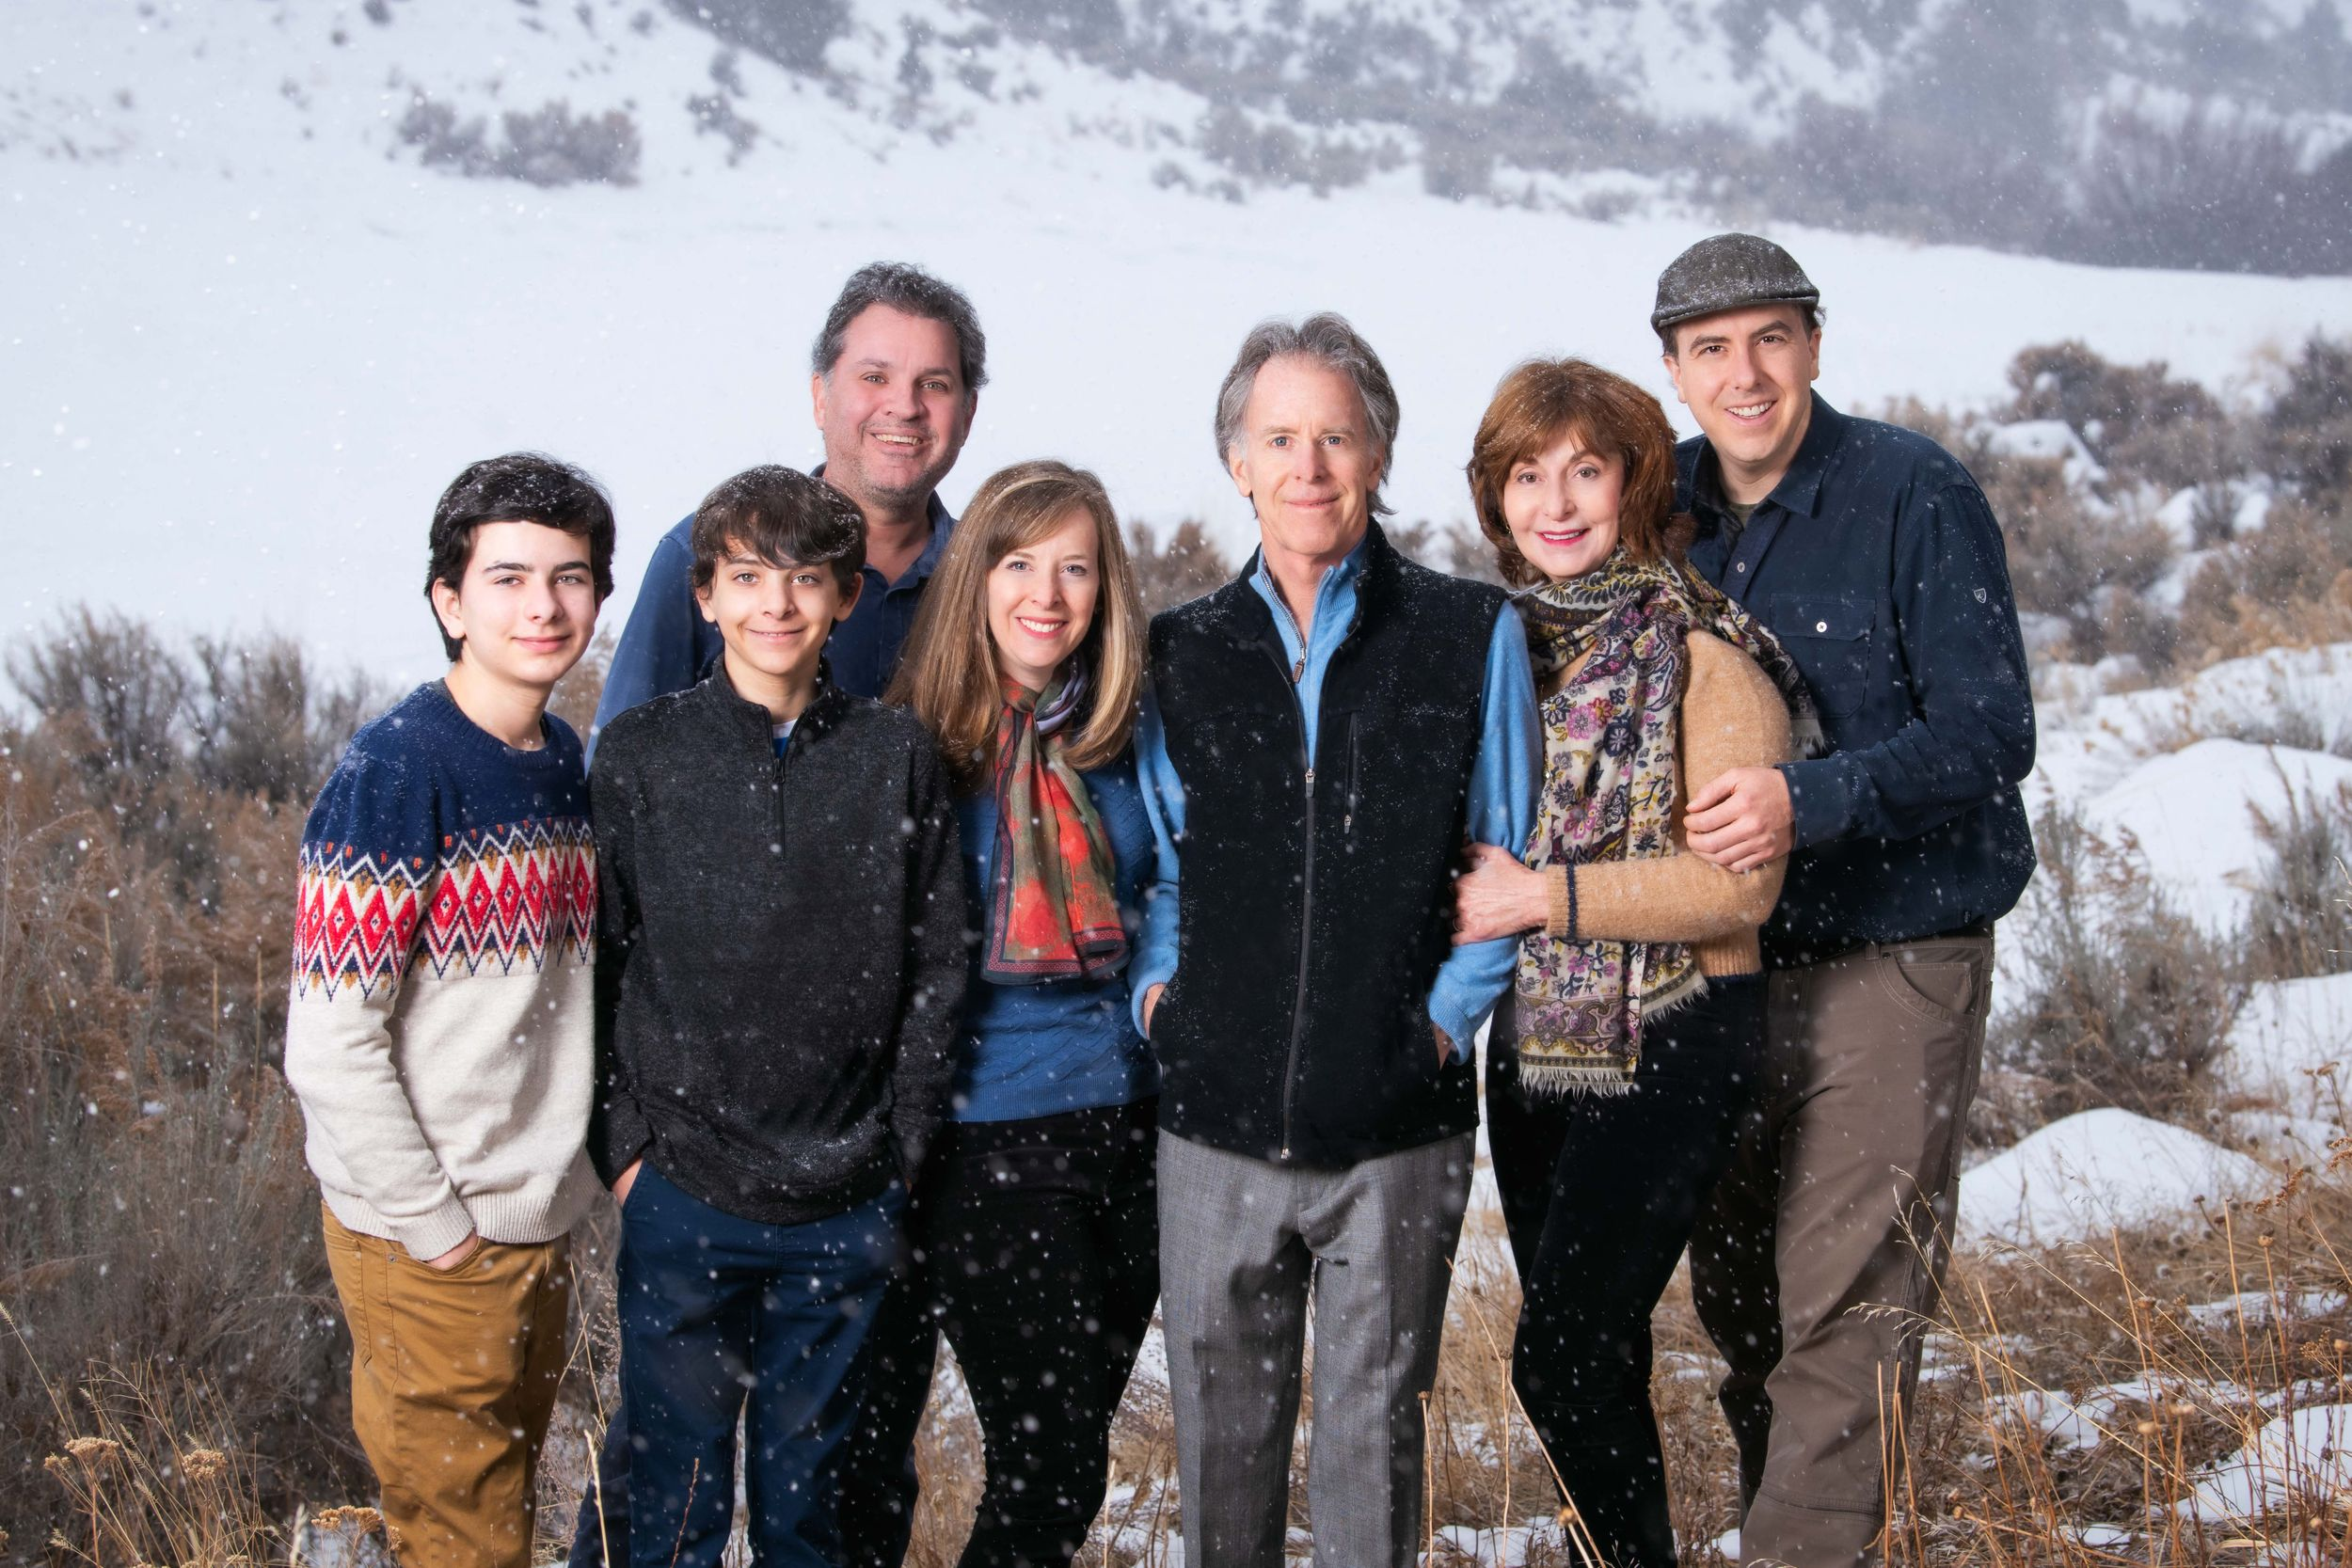 Three generations of a family outside in the mountains while it's snowing